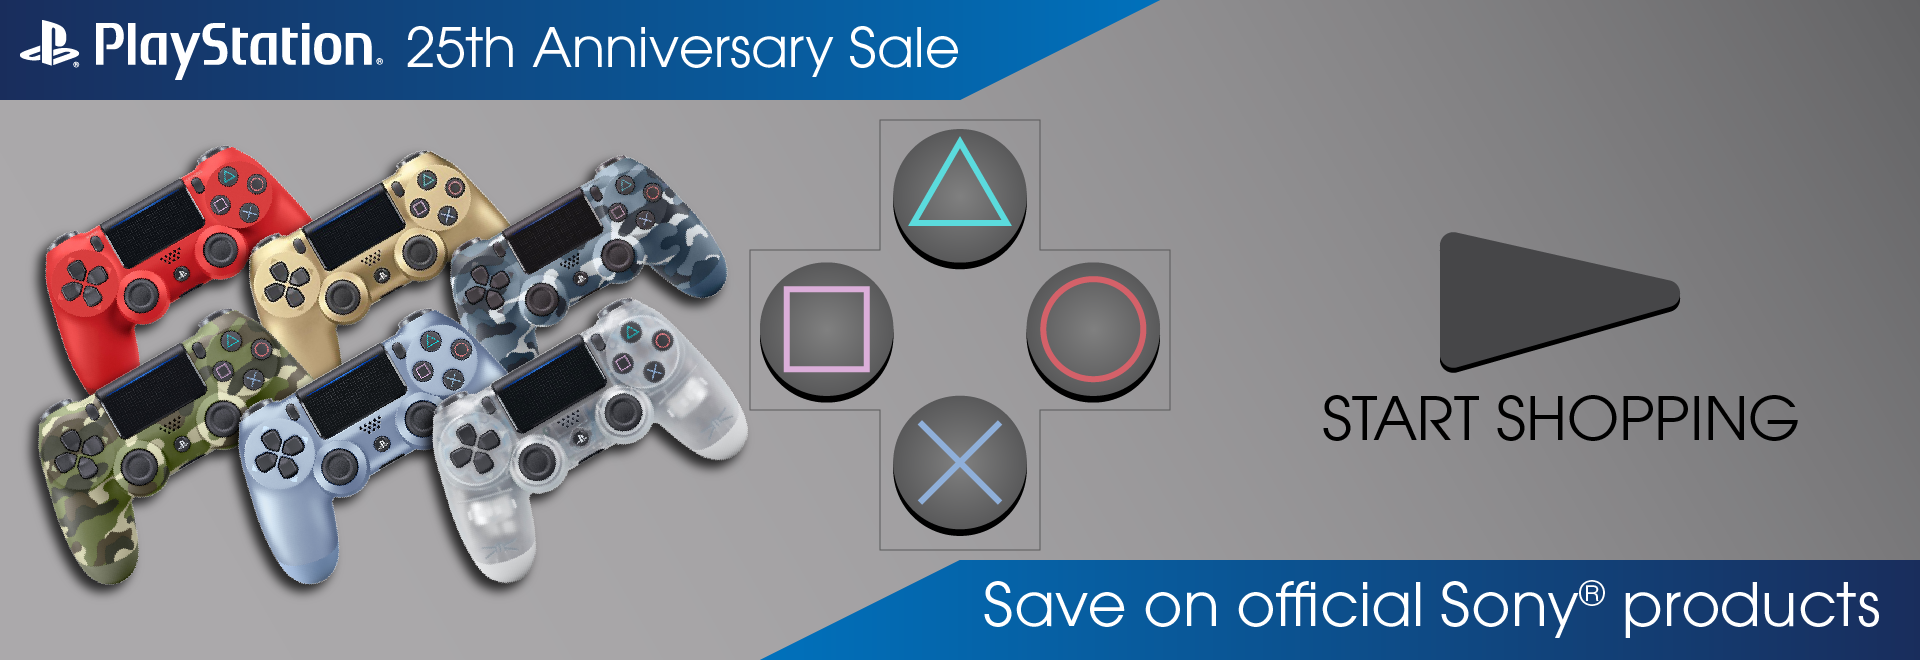 PlayStation 25th Anniversary Sale